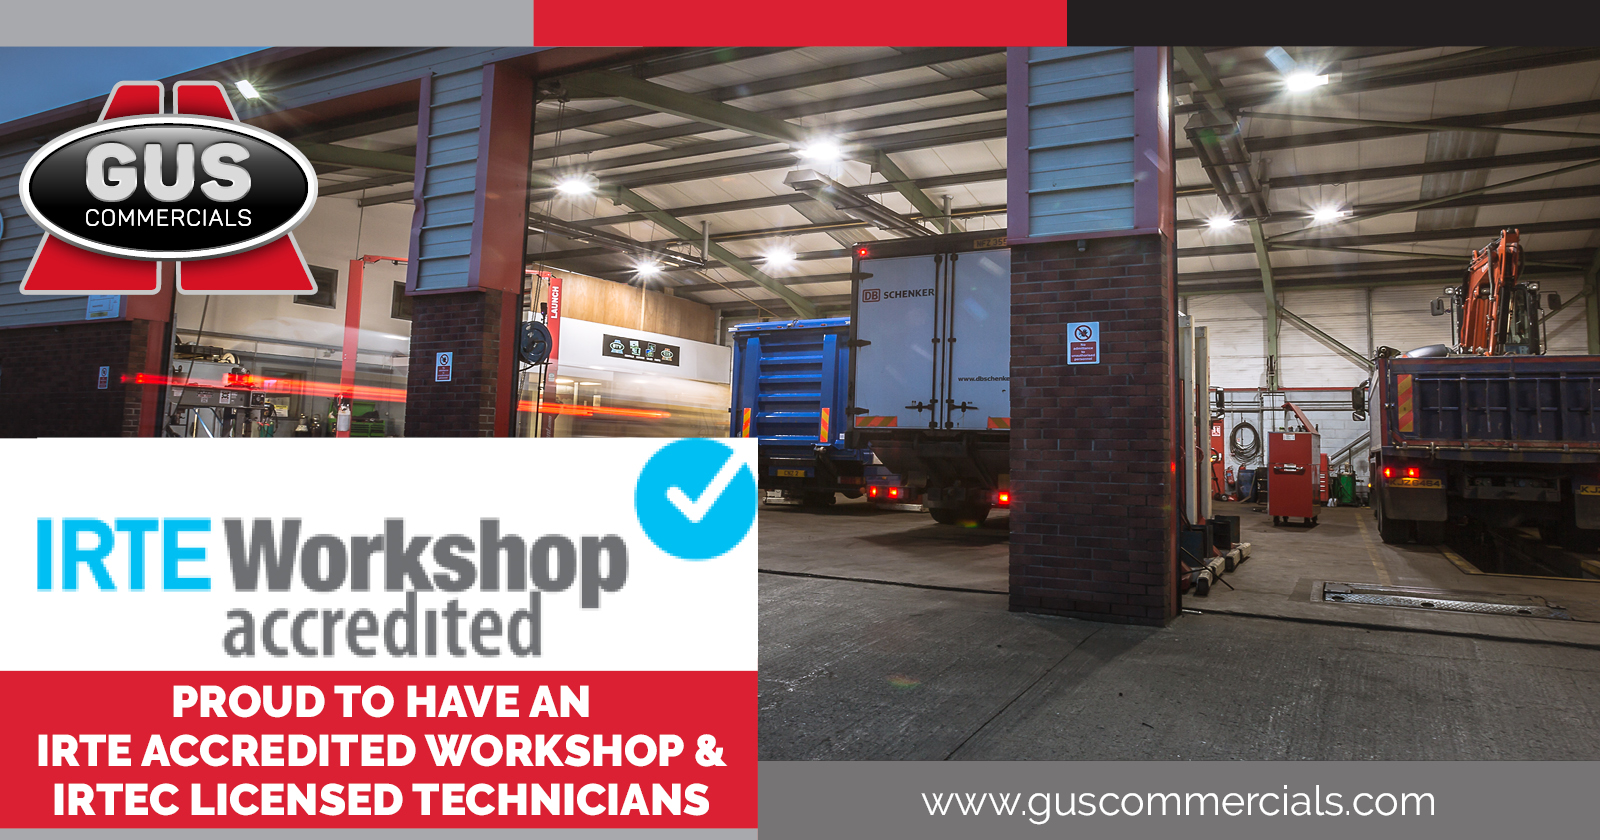 Gus Commercials' commercial vehicle workshop showing IRTE workshop accreditation logo